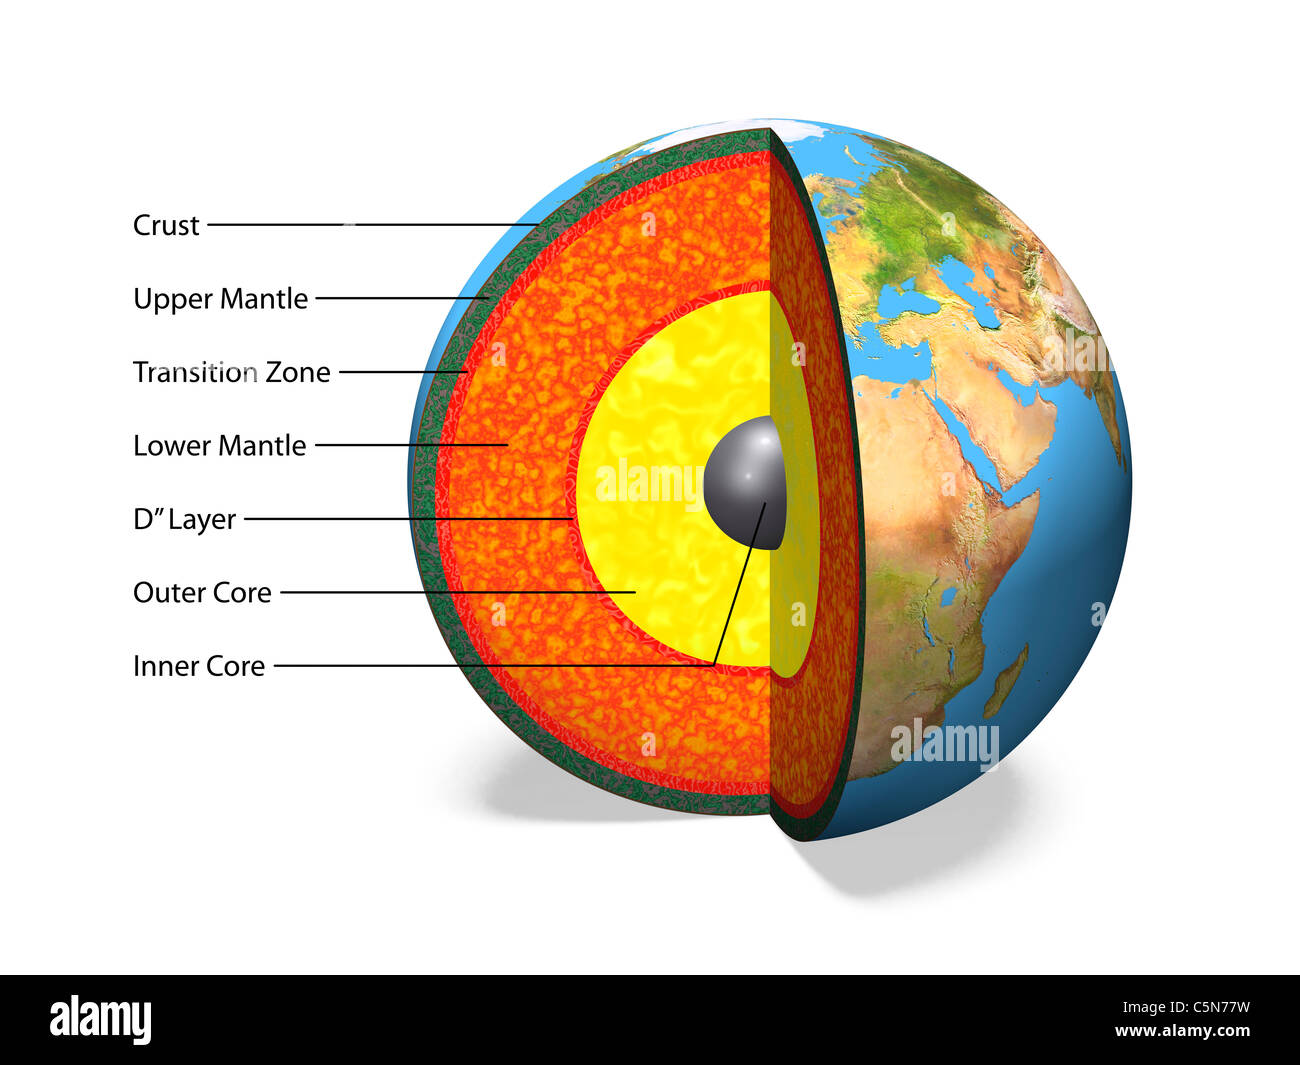 structure of the earth diagram 7 pin caravan plug wiring inner with captions stock photo 37960717 alamy